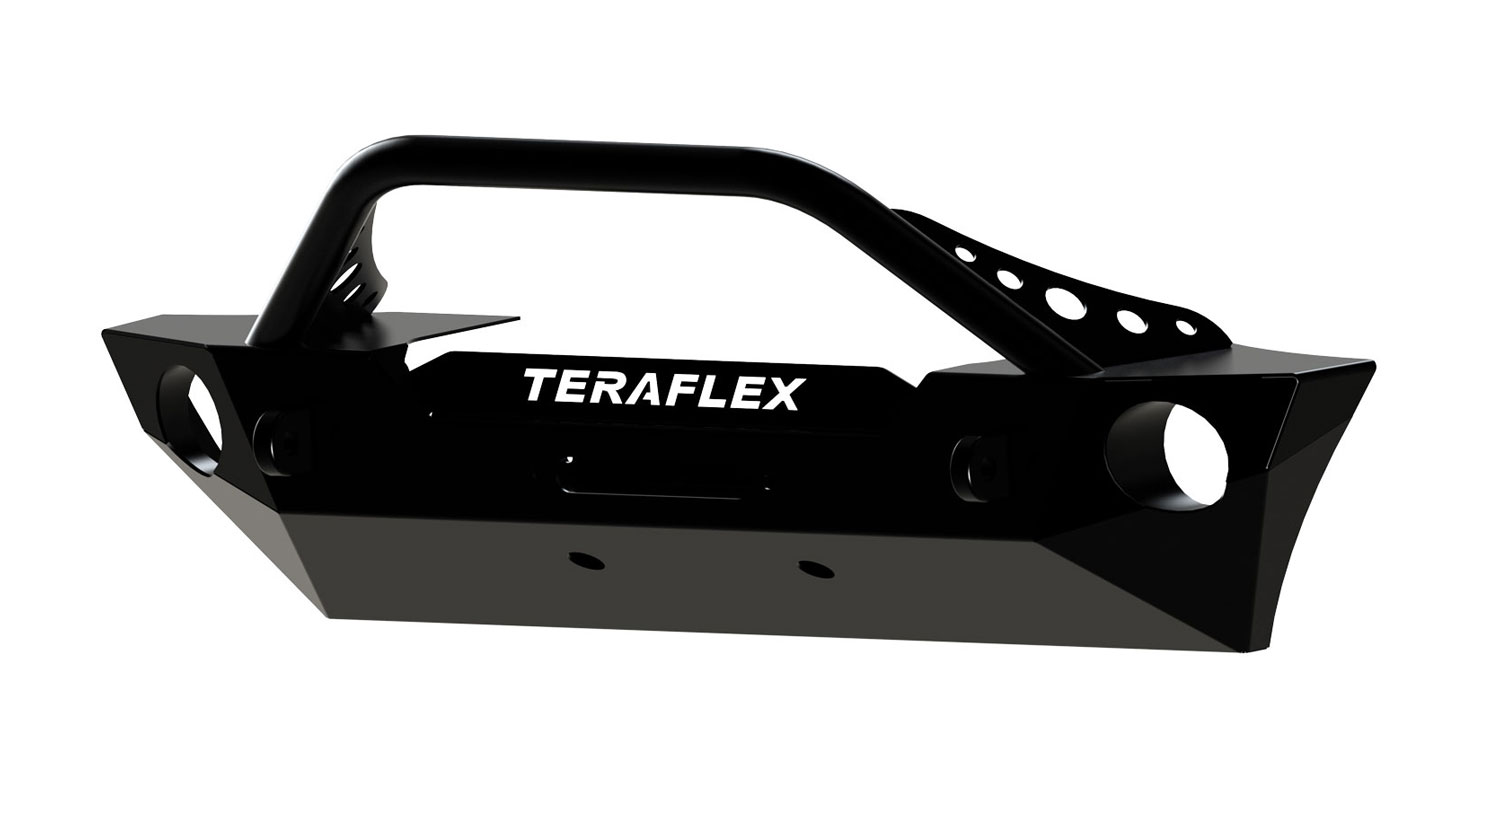 Teraflex Front Epic Bumper w/ Hoop Kit for Wrangler JK